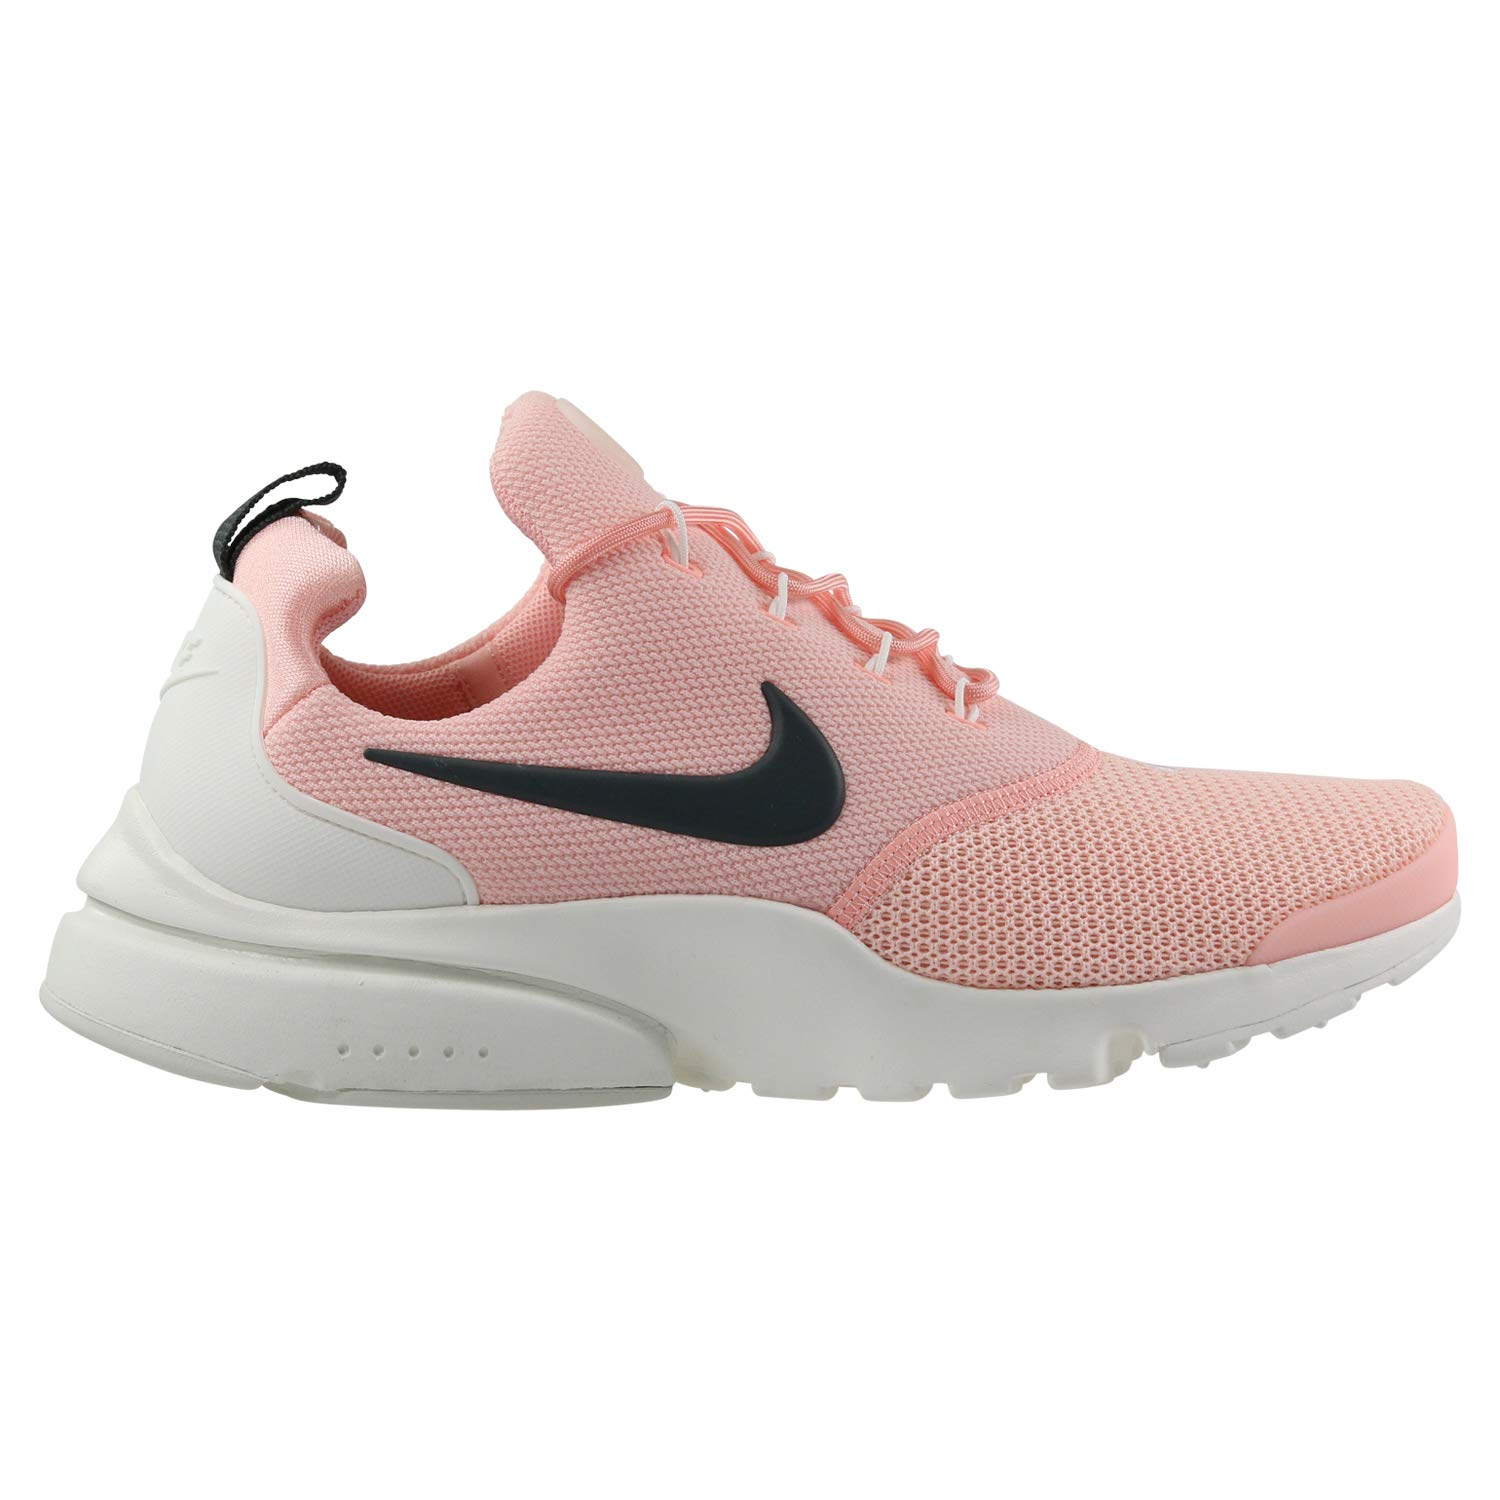 4f0a612843d8 Galleon - NIKE Women s WMNS Presto Fly Competition Running Shoes ...